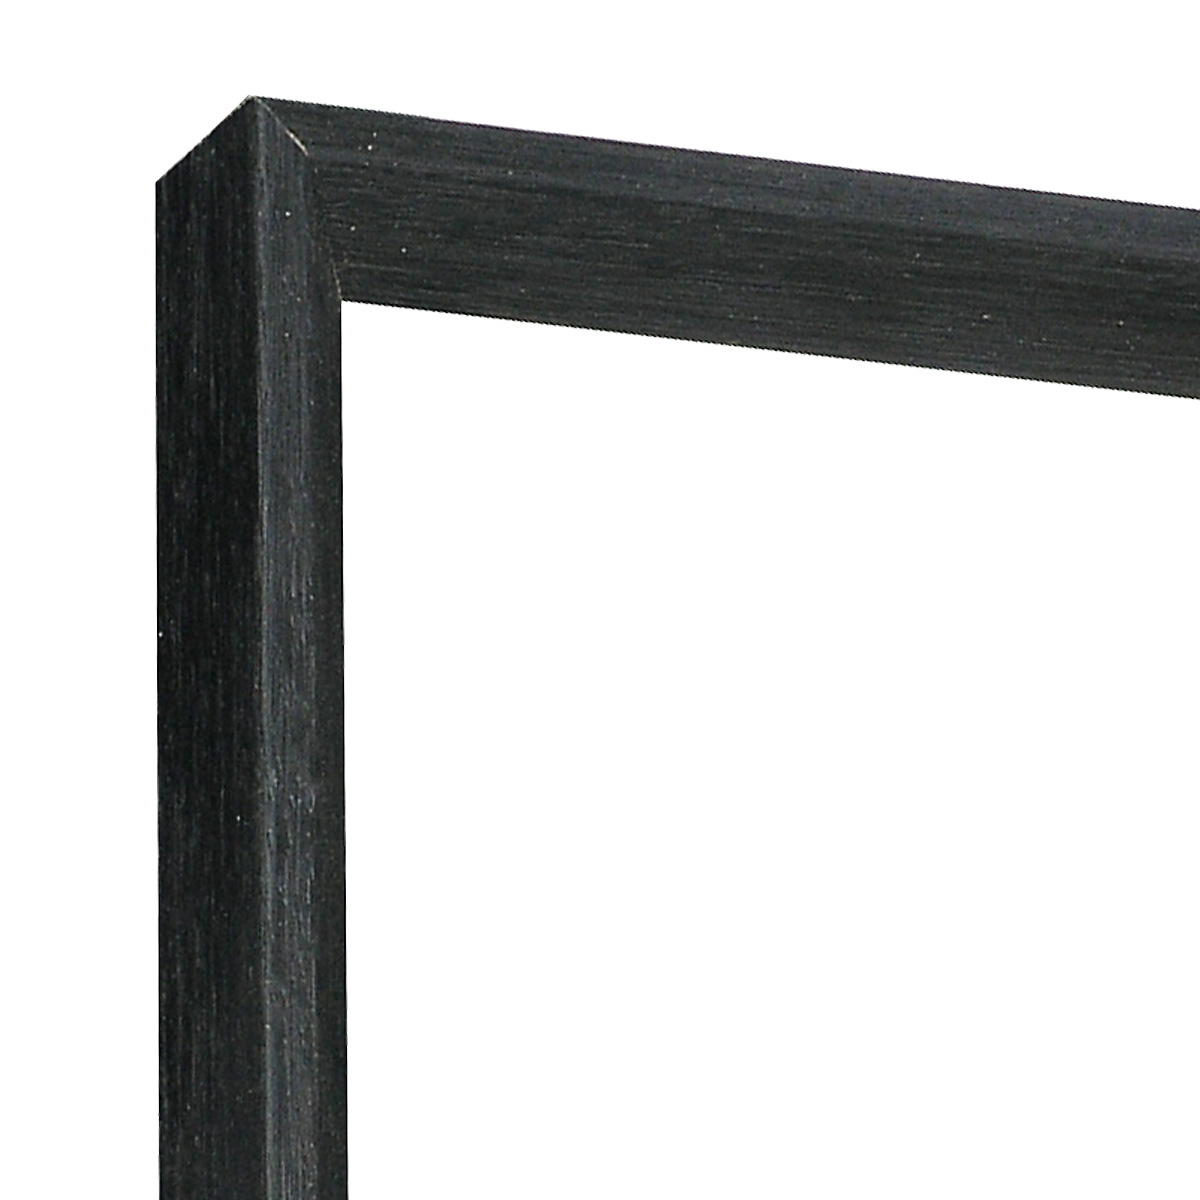 Moulding ayous 25mm height, 14mm width, black